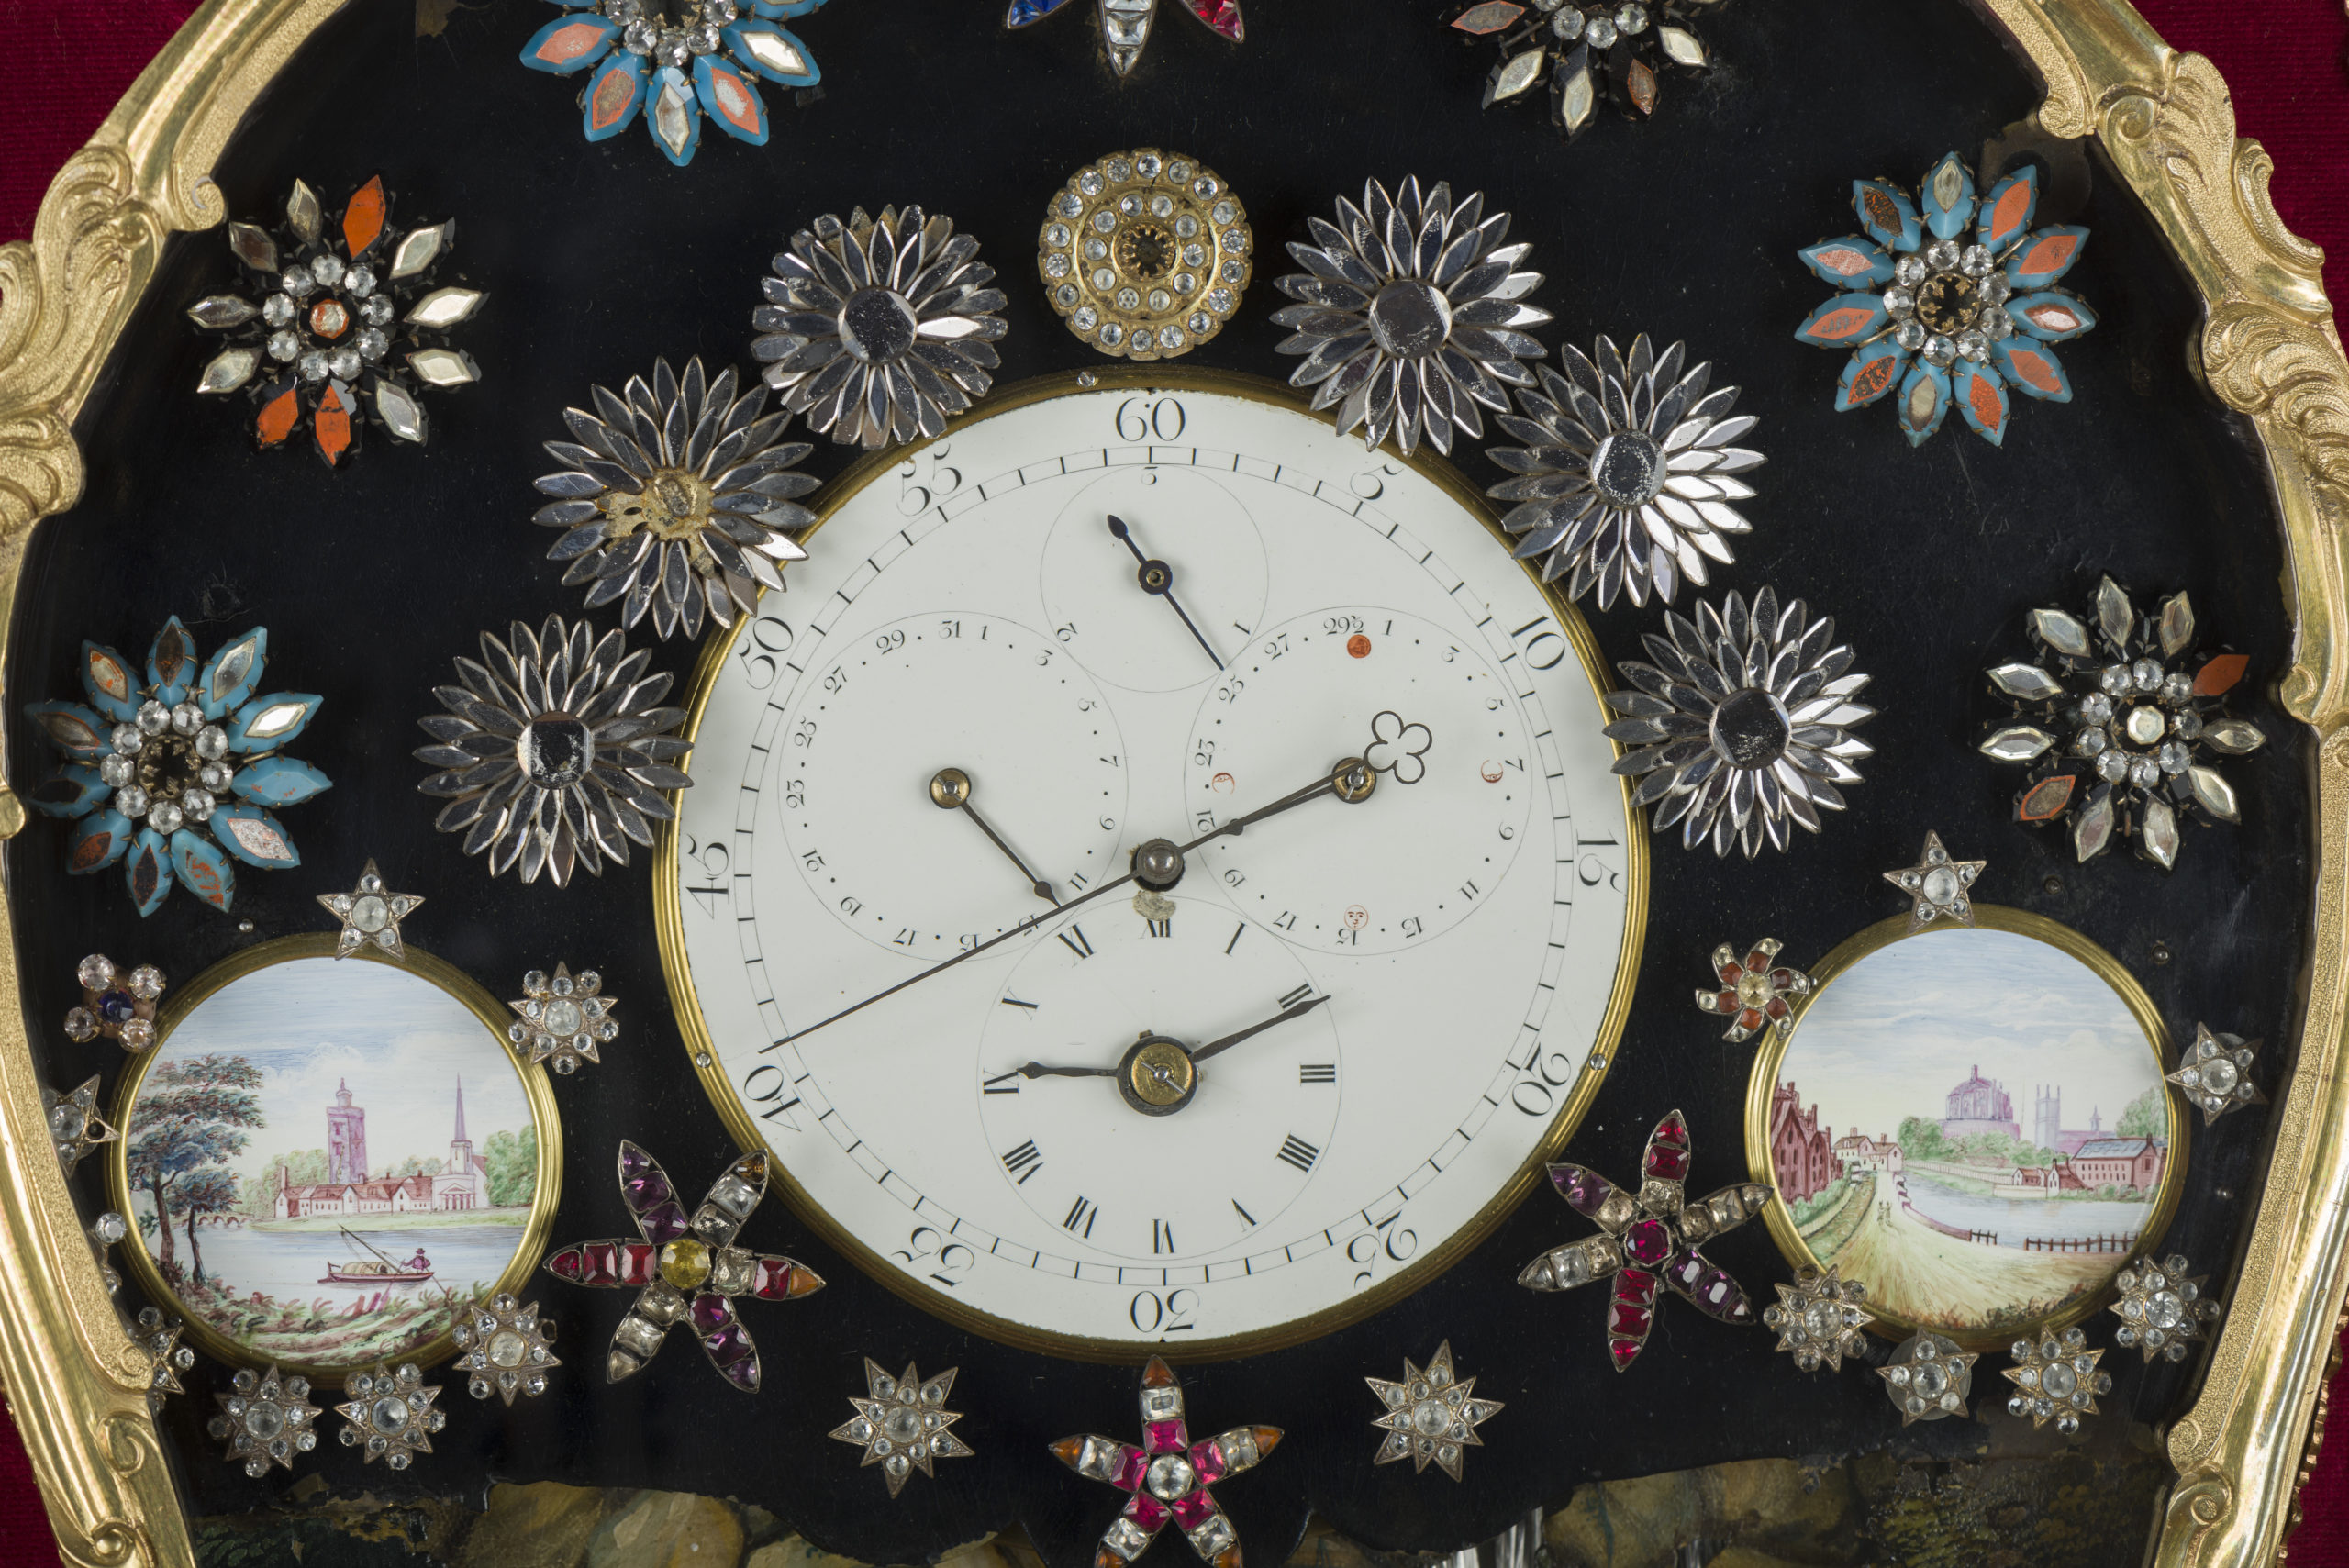 Close up on clock face, showing jewelled flowers/stars which surround the clock face. On either side of the clock face, there are small pictures of river-side scenes.